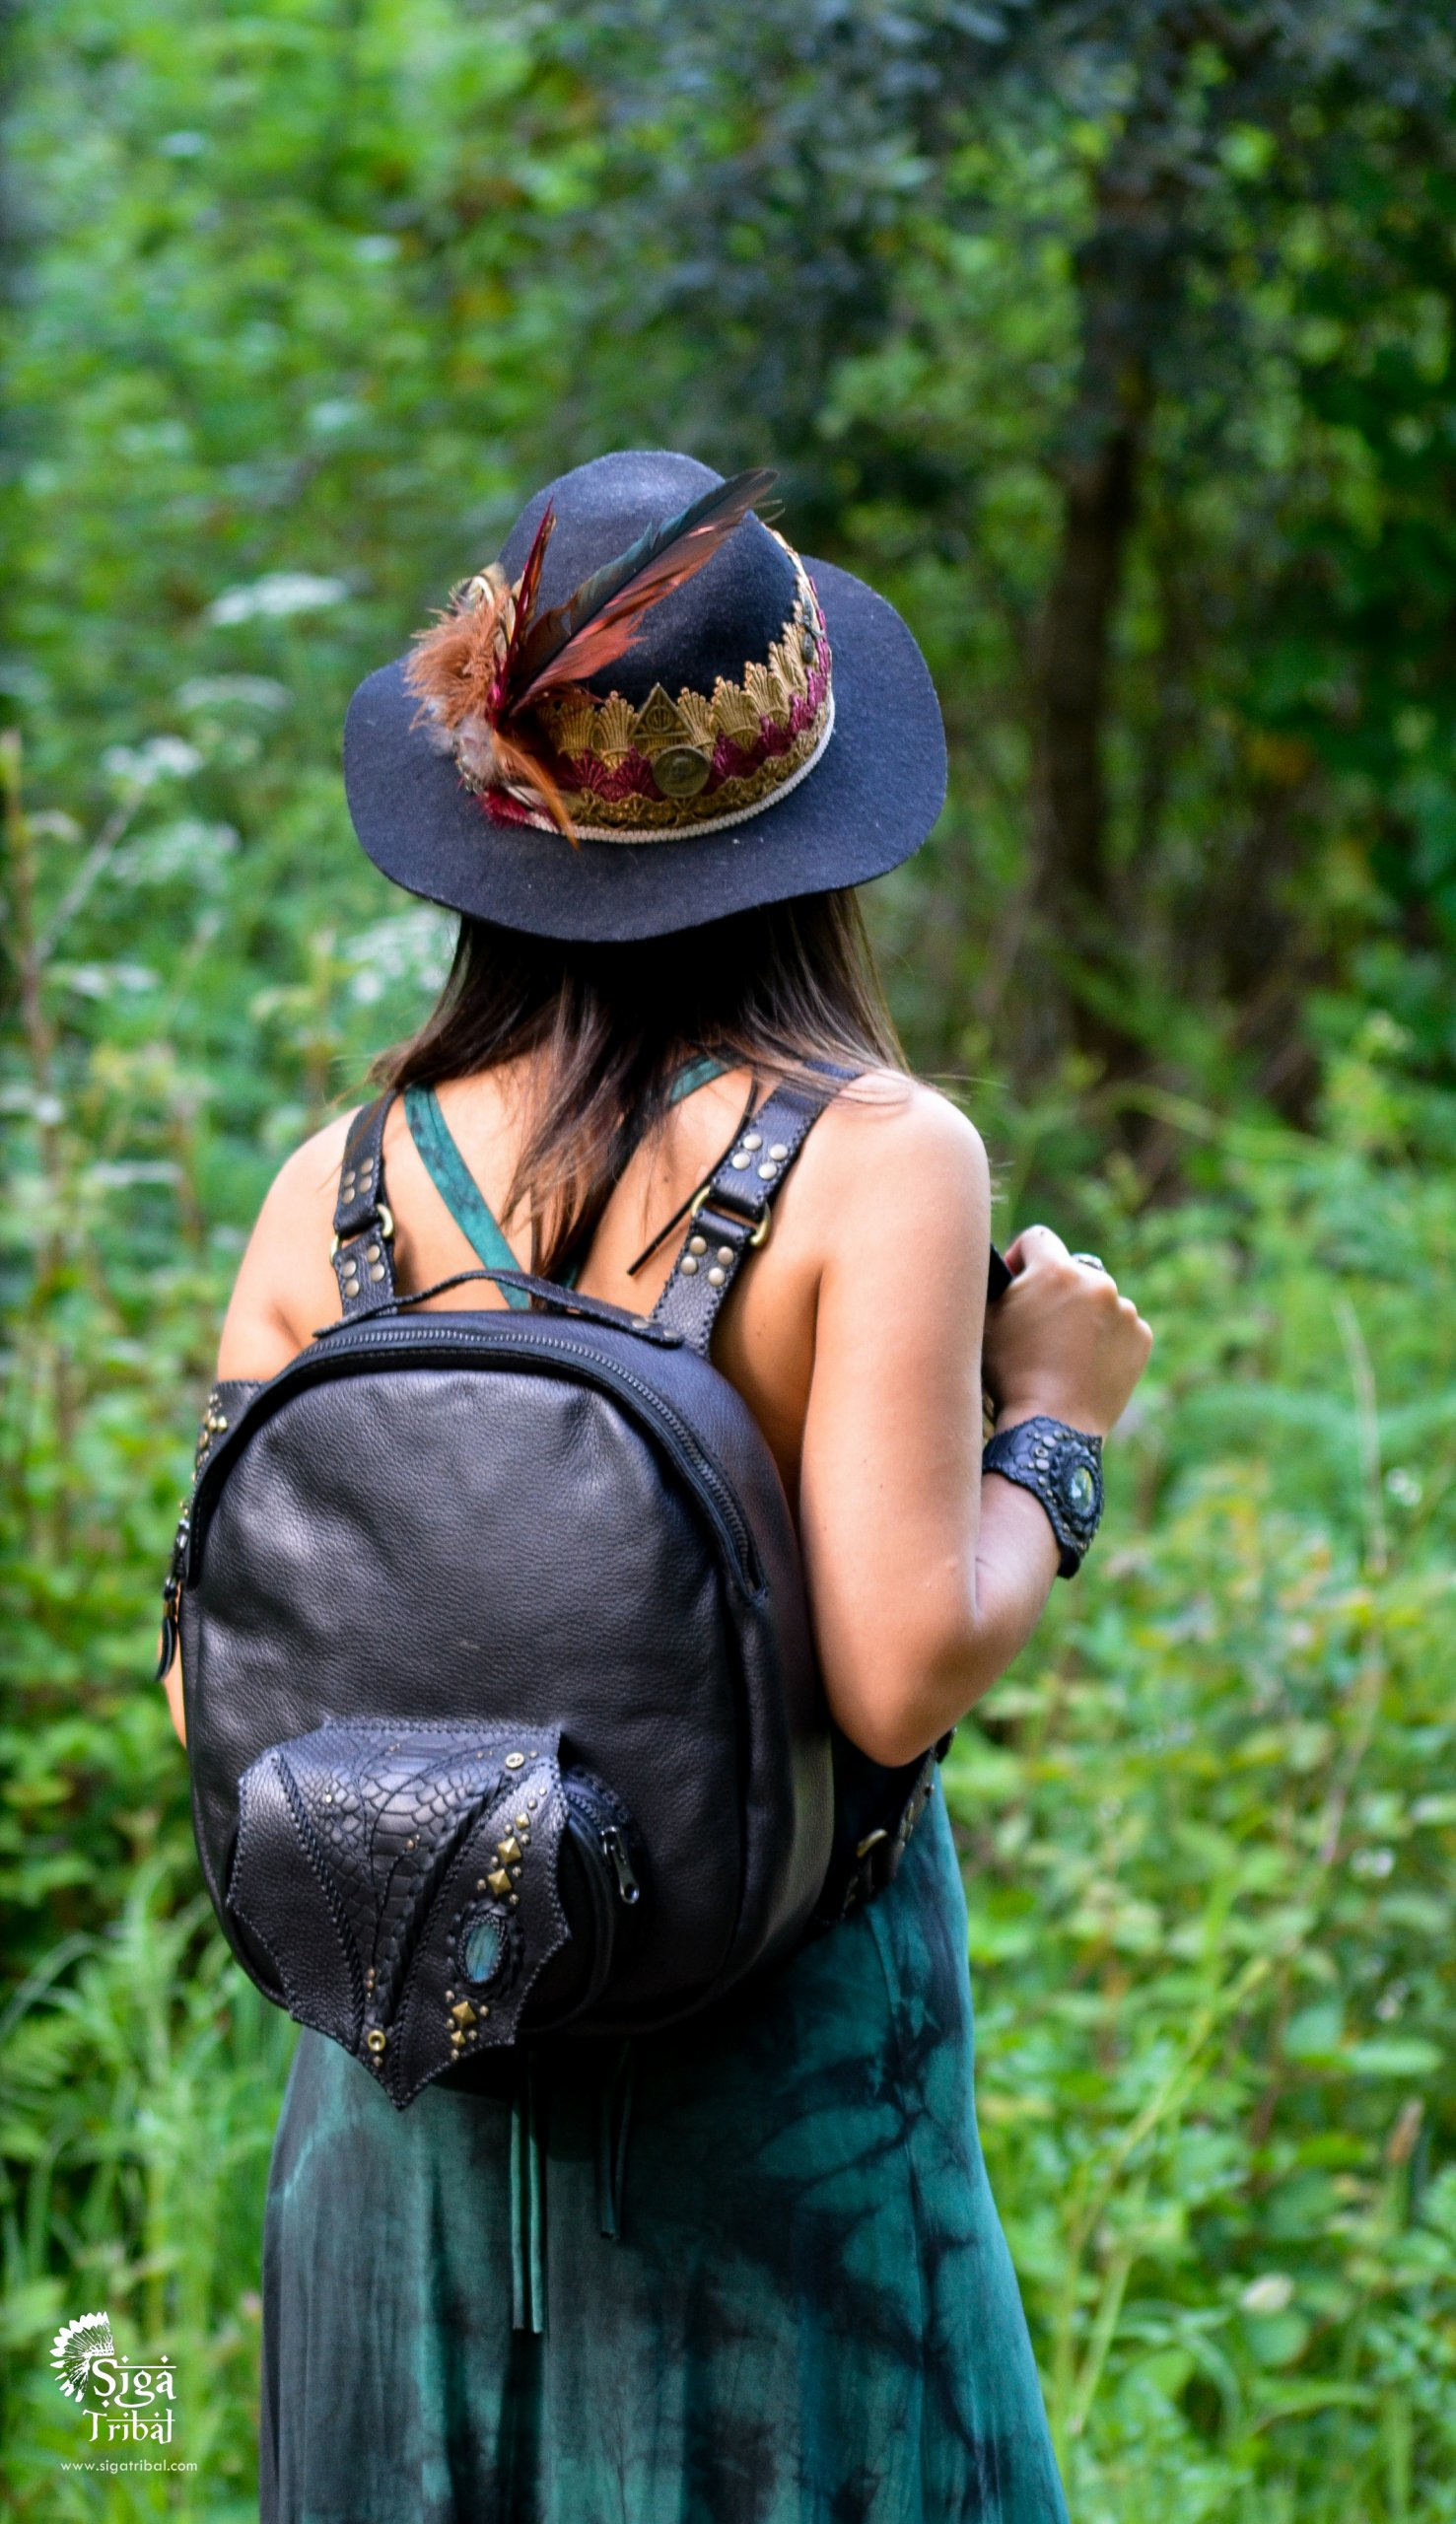 Backpack Classic by Siga Tribal